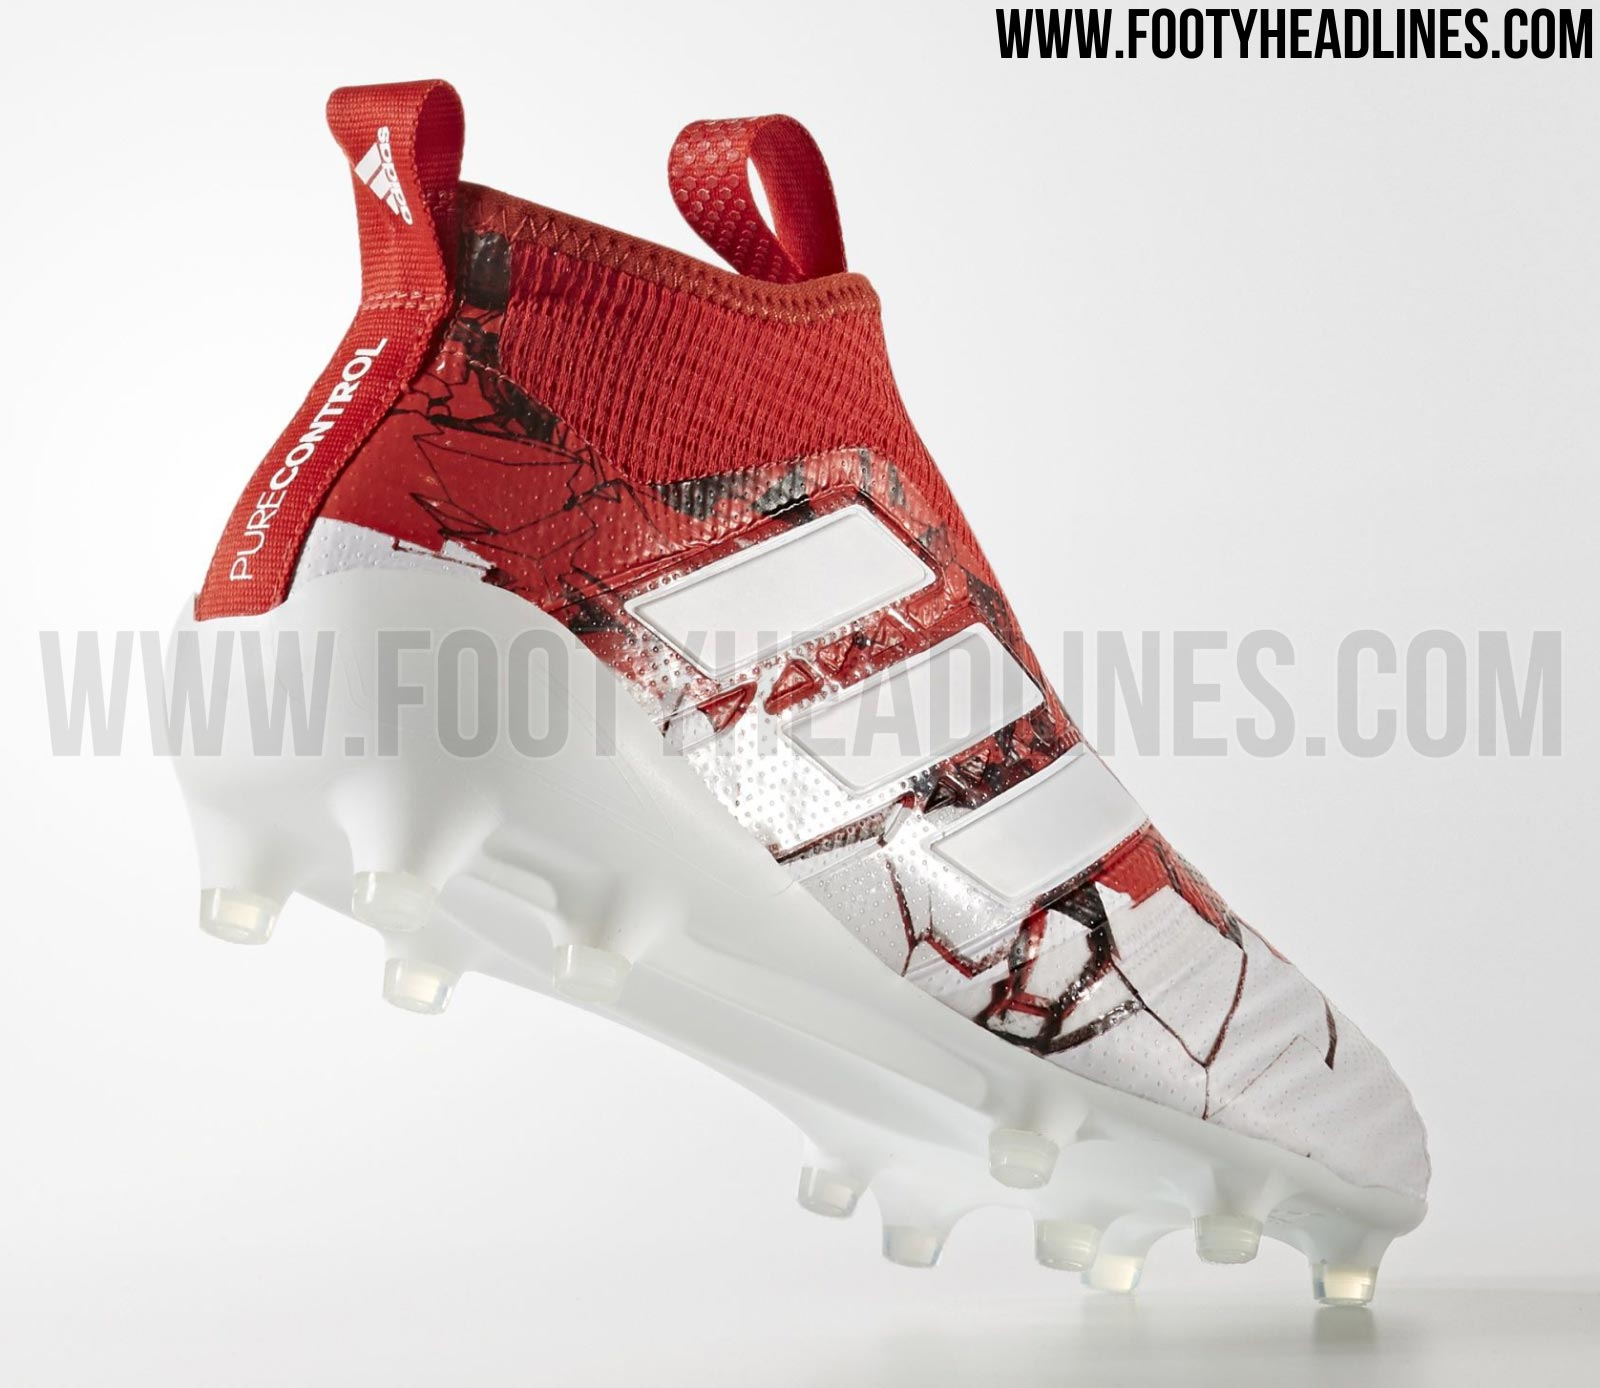 adidas ace limited edition